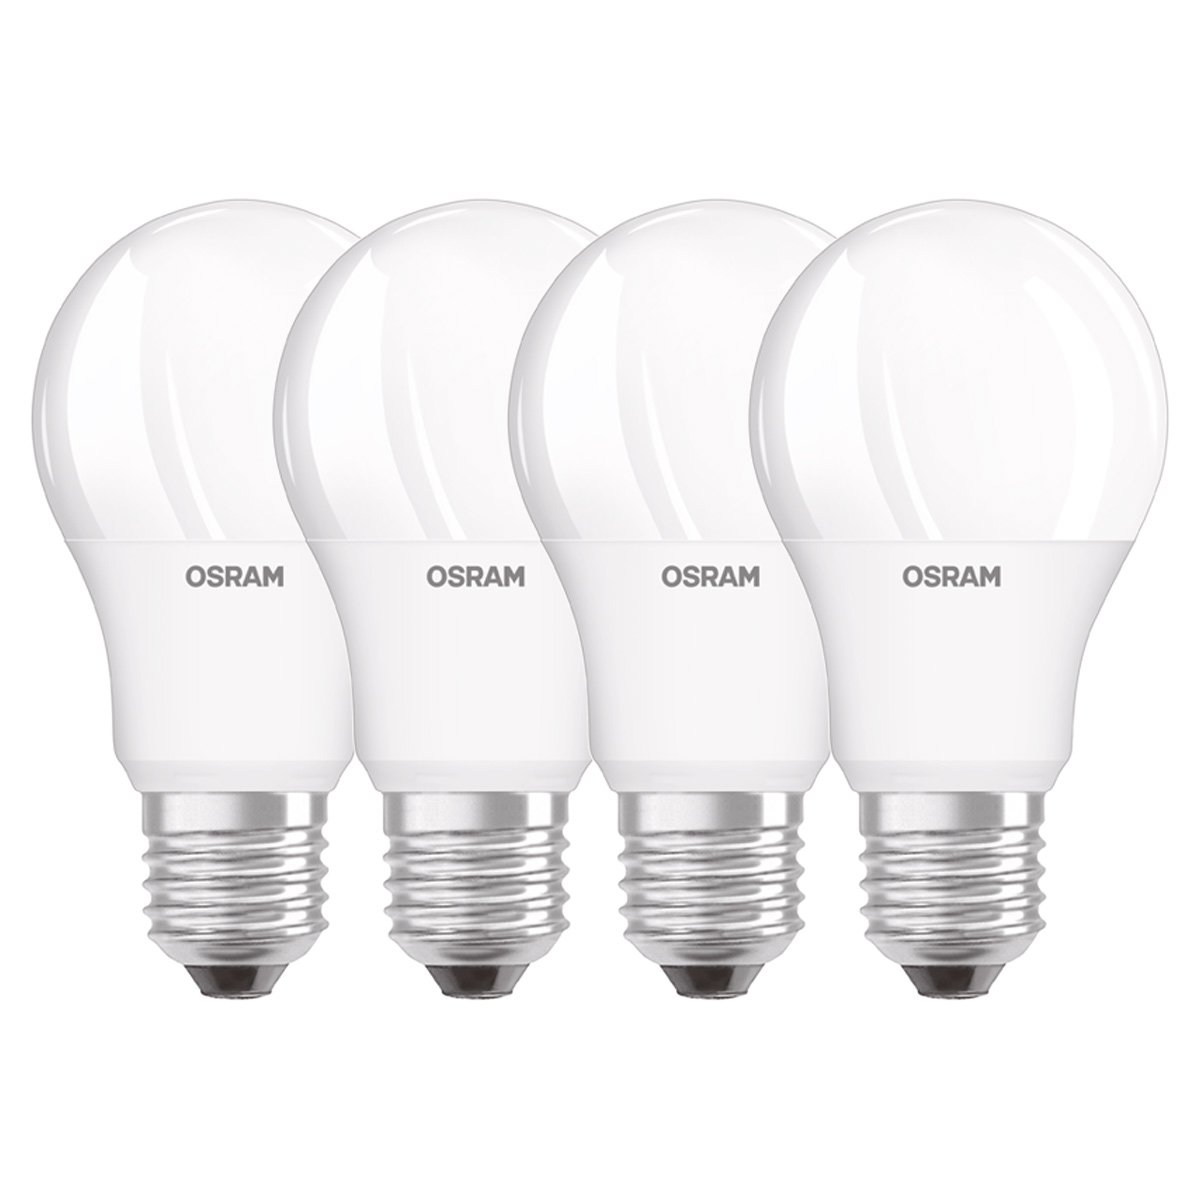 Osram LED lamps: reviews, advantages and disadvantages, comparison with other manufacturers 69